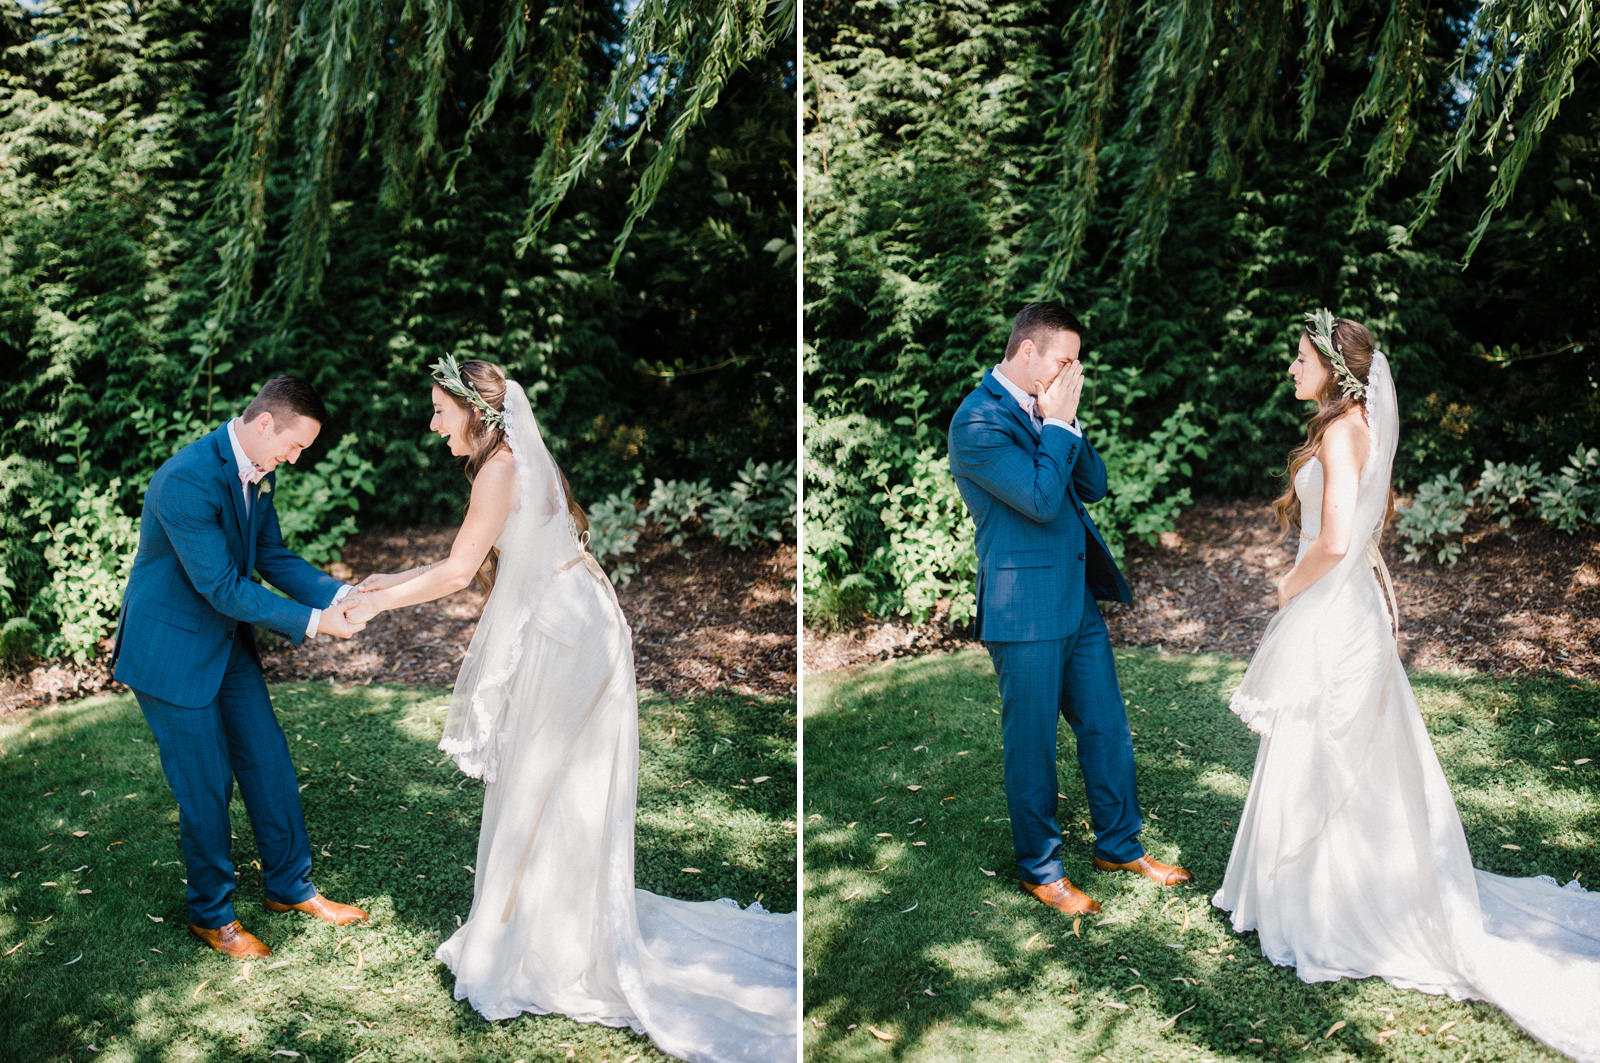 027-an-emotional-groom-crying-during-his-first-look-with-his-bride.jpg